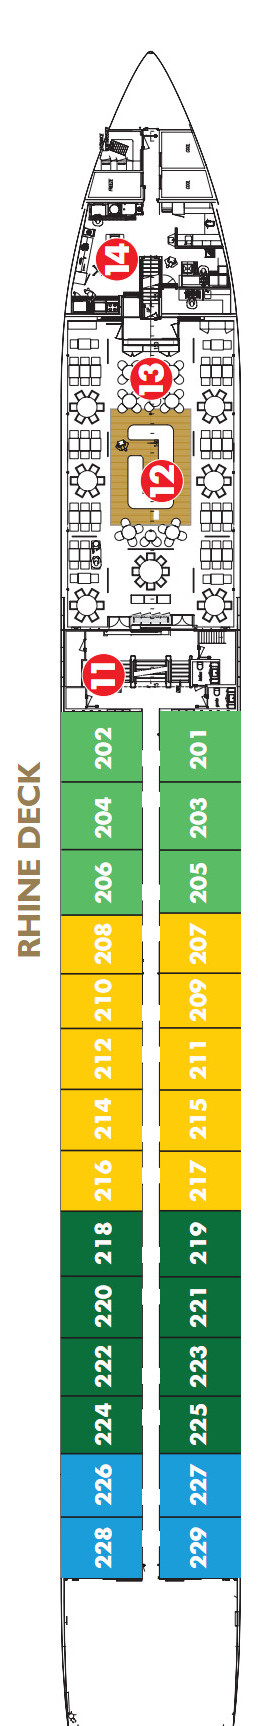 Scenic Gem Rhine Deck layout